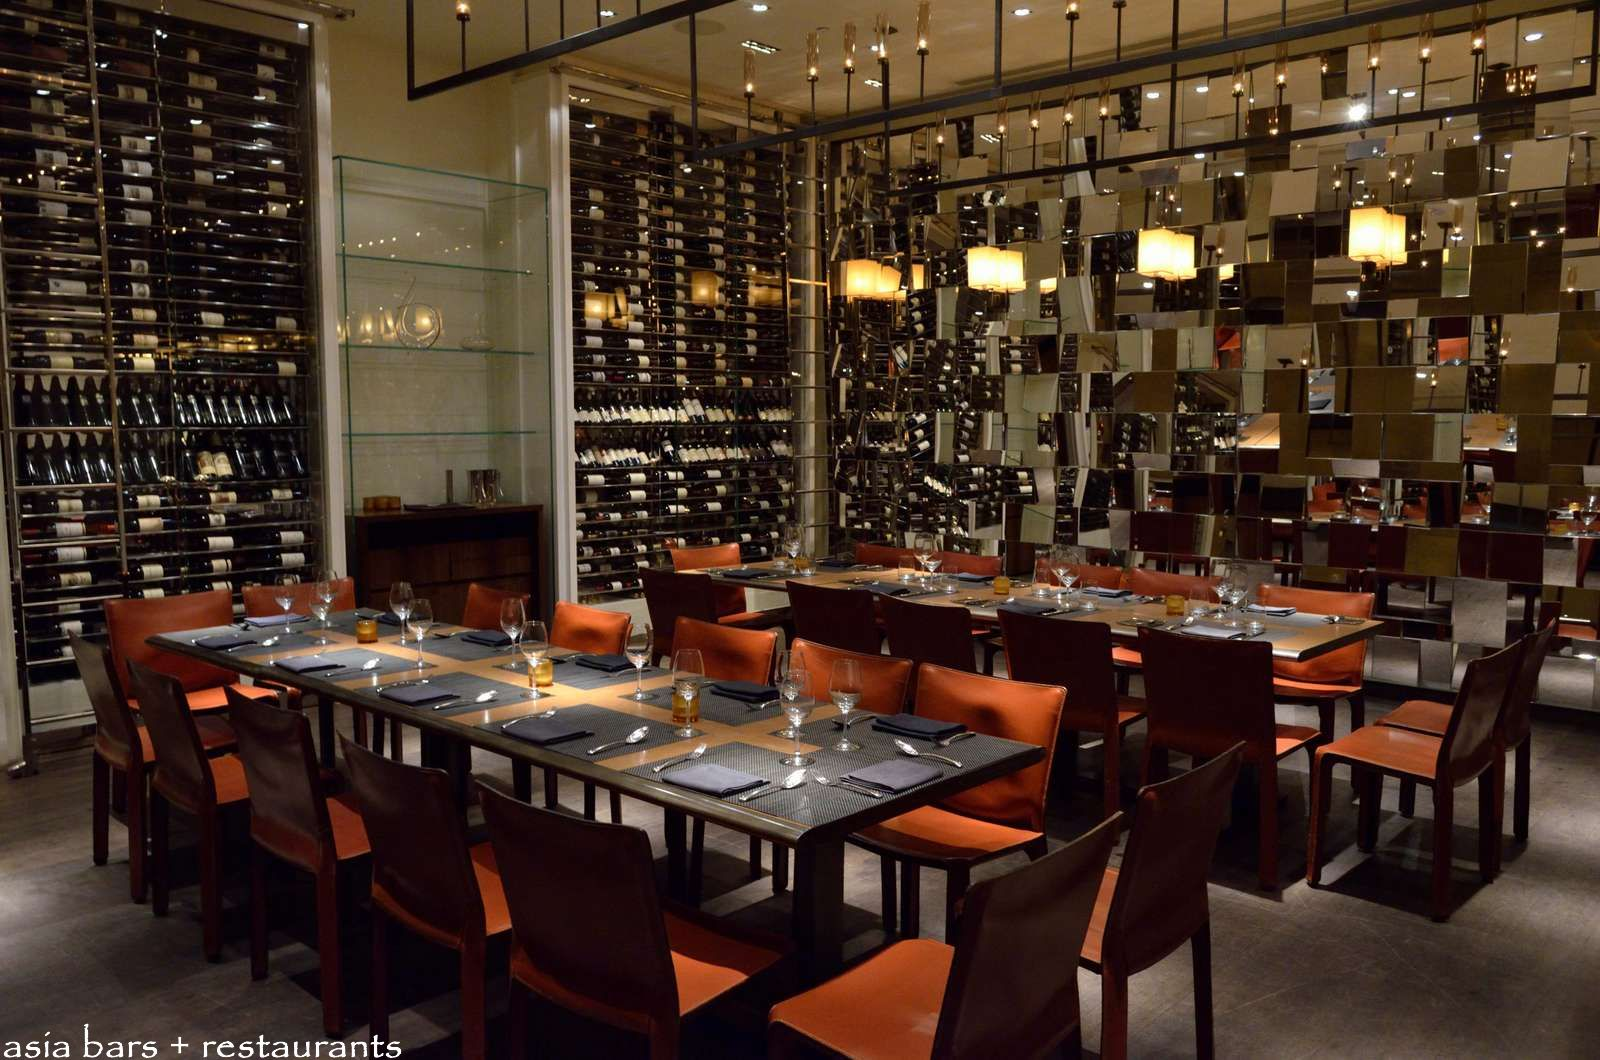 Restaurant Dining Room Chairs Cut By Wolfgang Puck Steakhouse At Marina Bay Sands